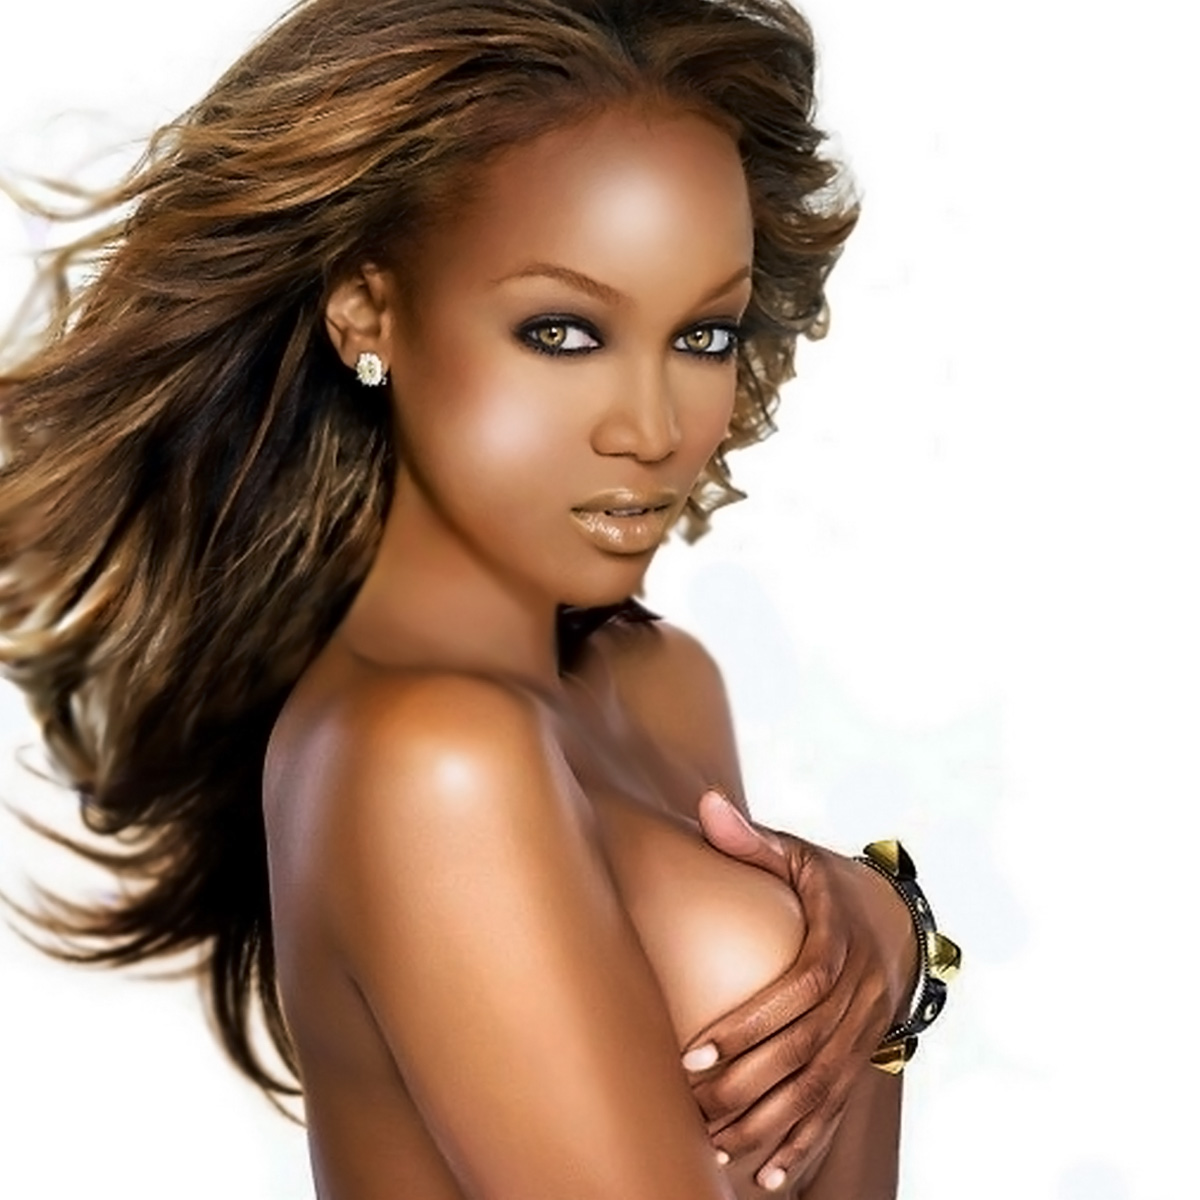 Tyra banks half naked 3